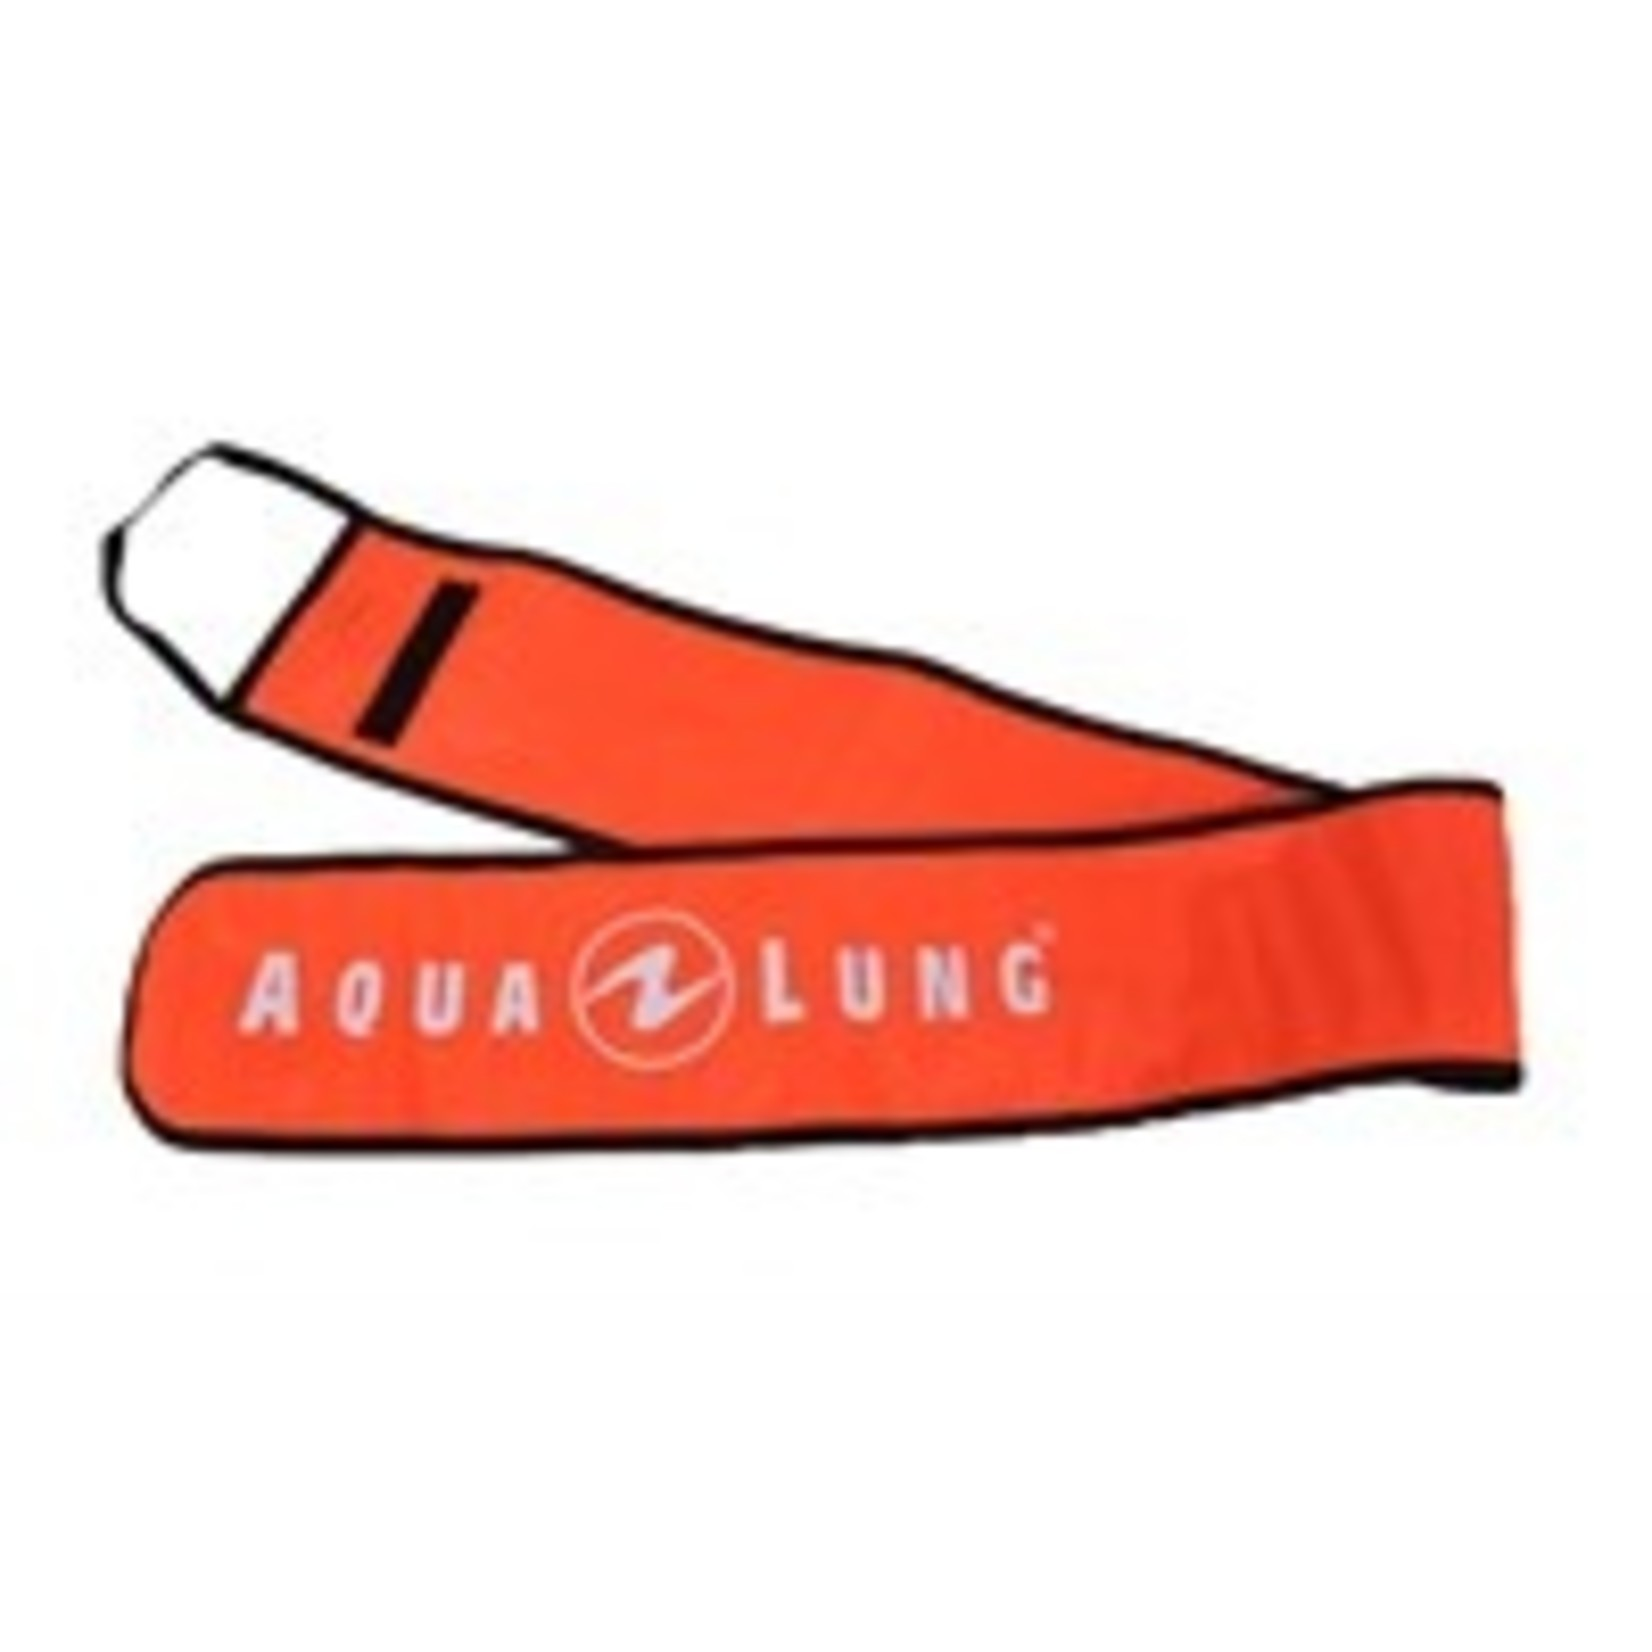 Aqua Lung SMB Orange Packaged with Pouch